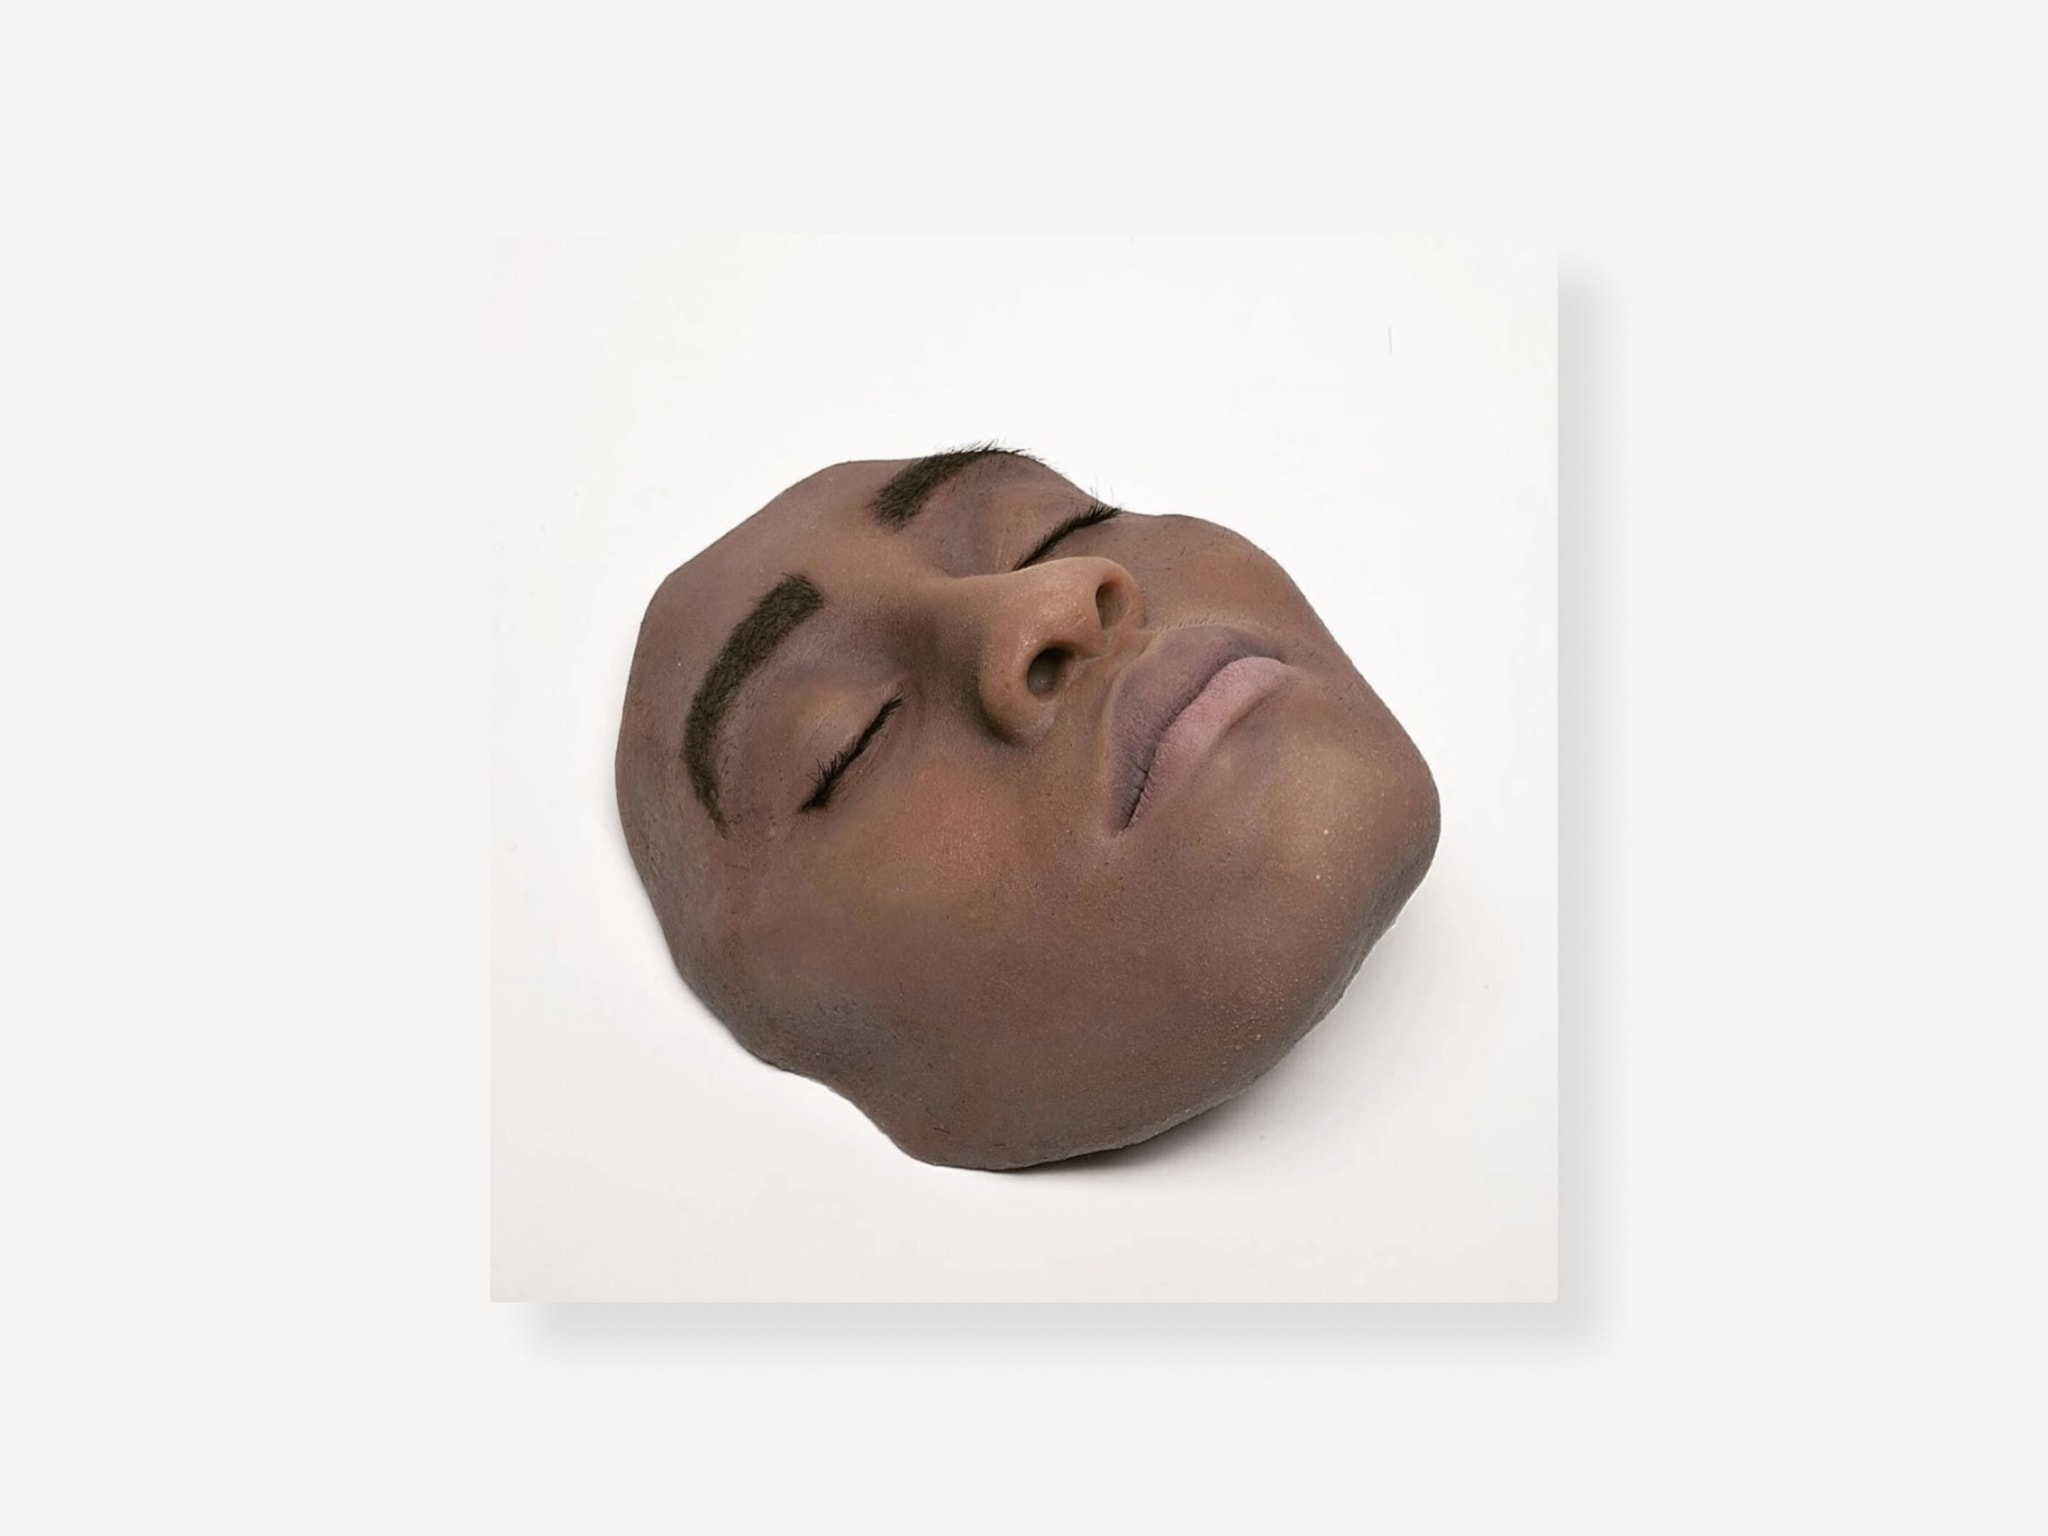 A lifelike sculpture of the front of a person's face on a white block.